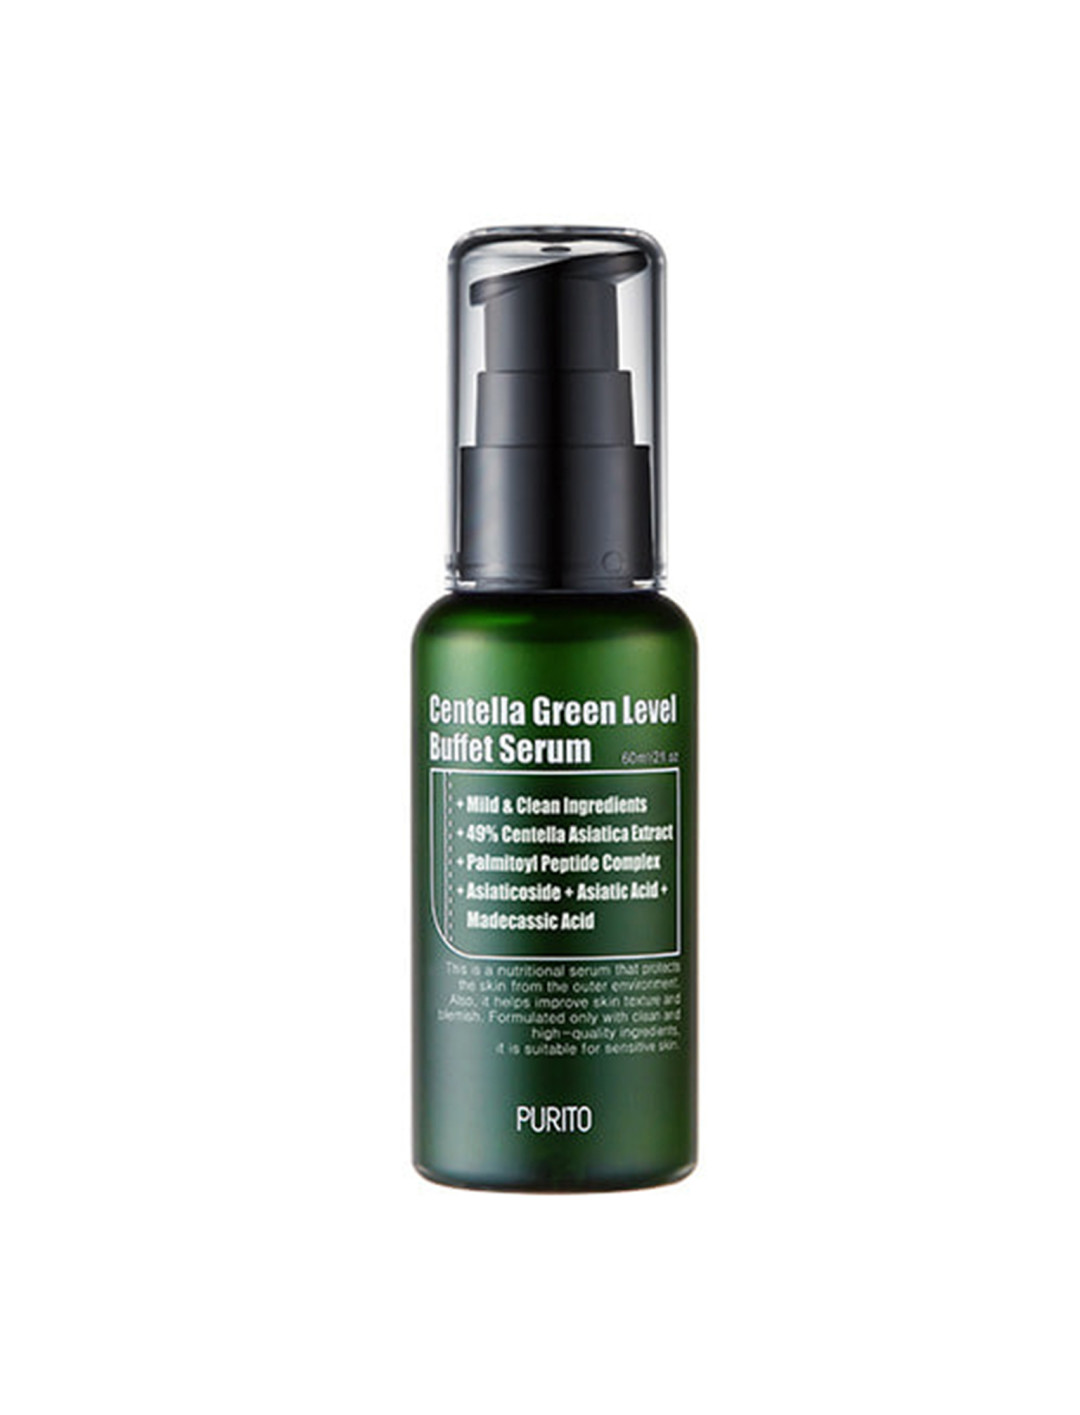 Centella Buffet Serum